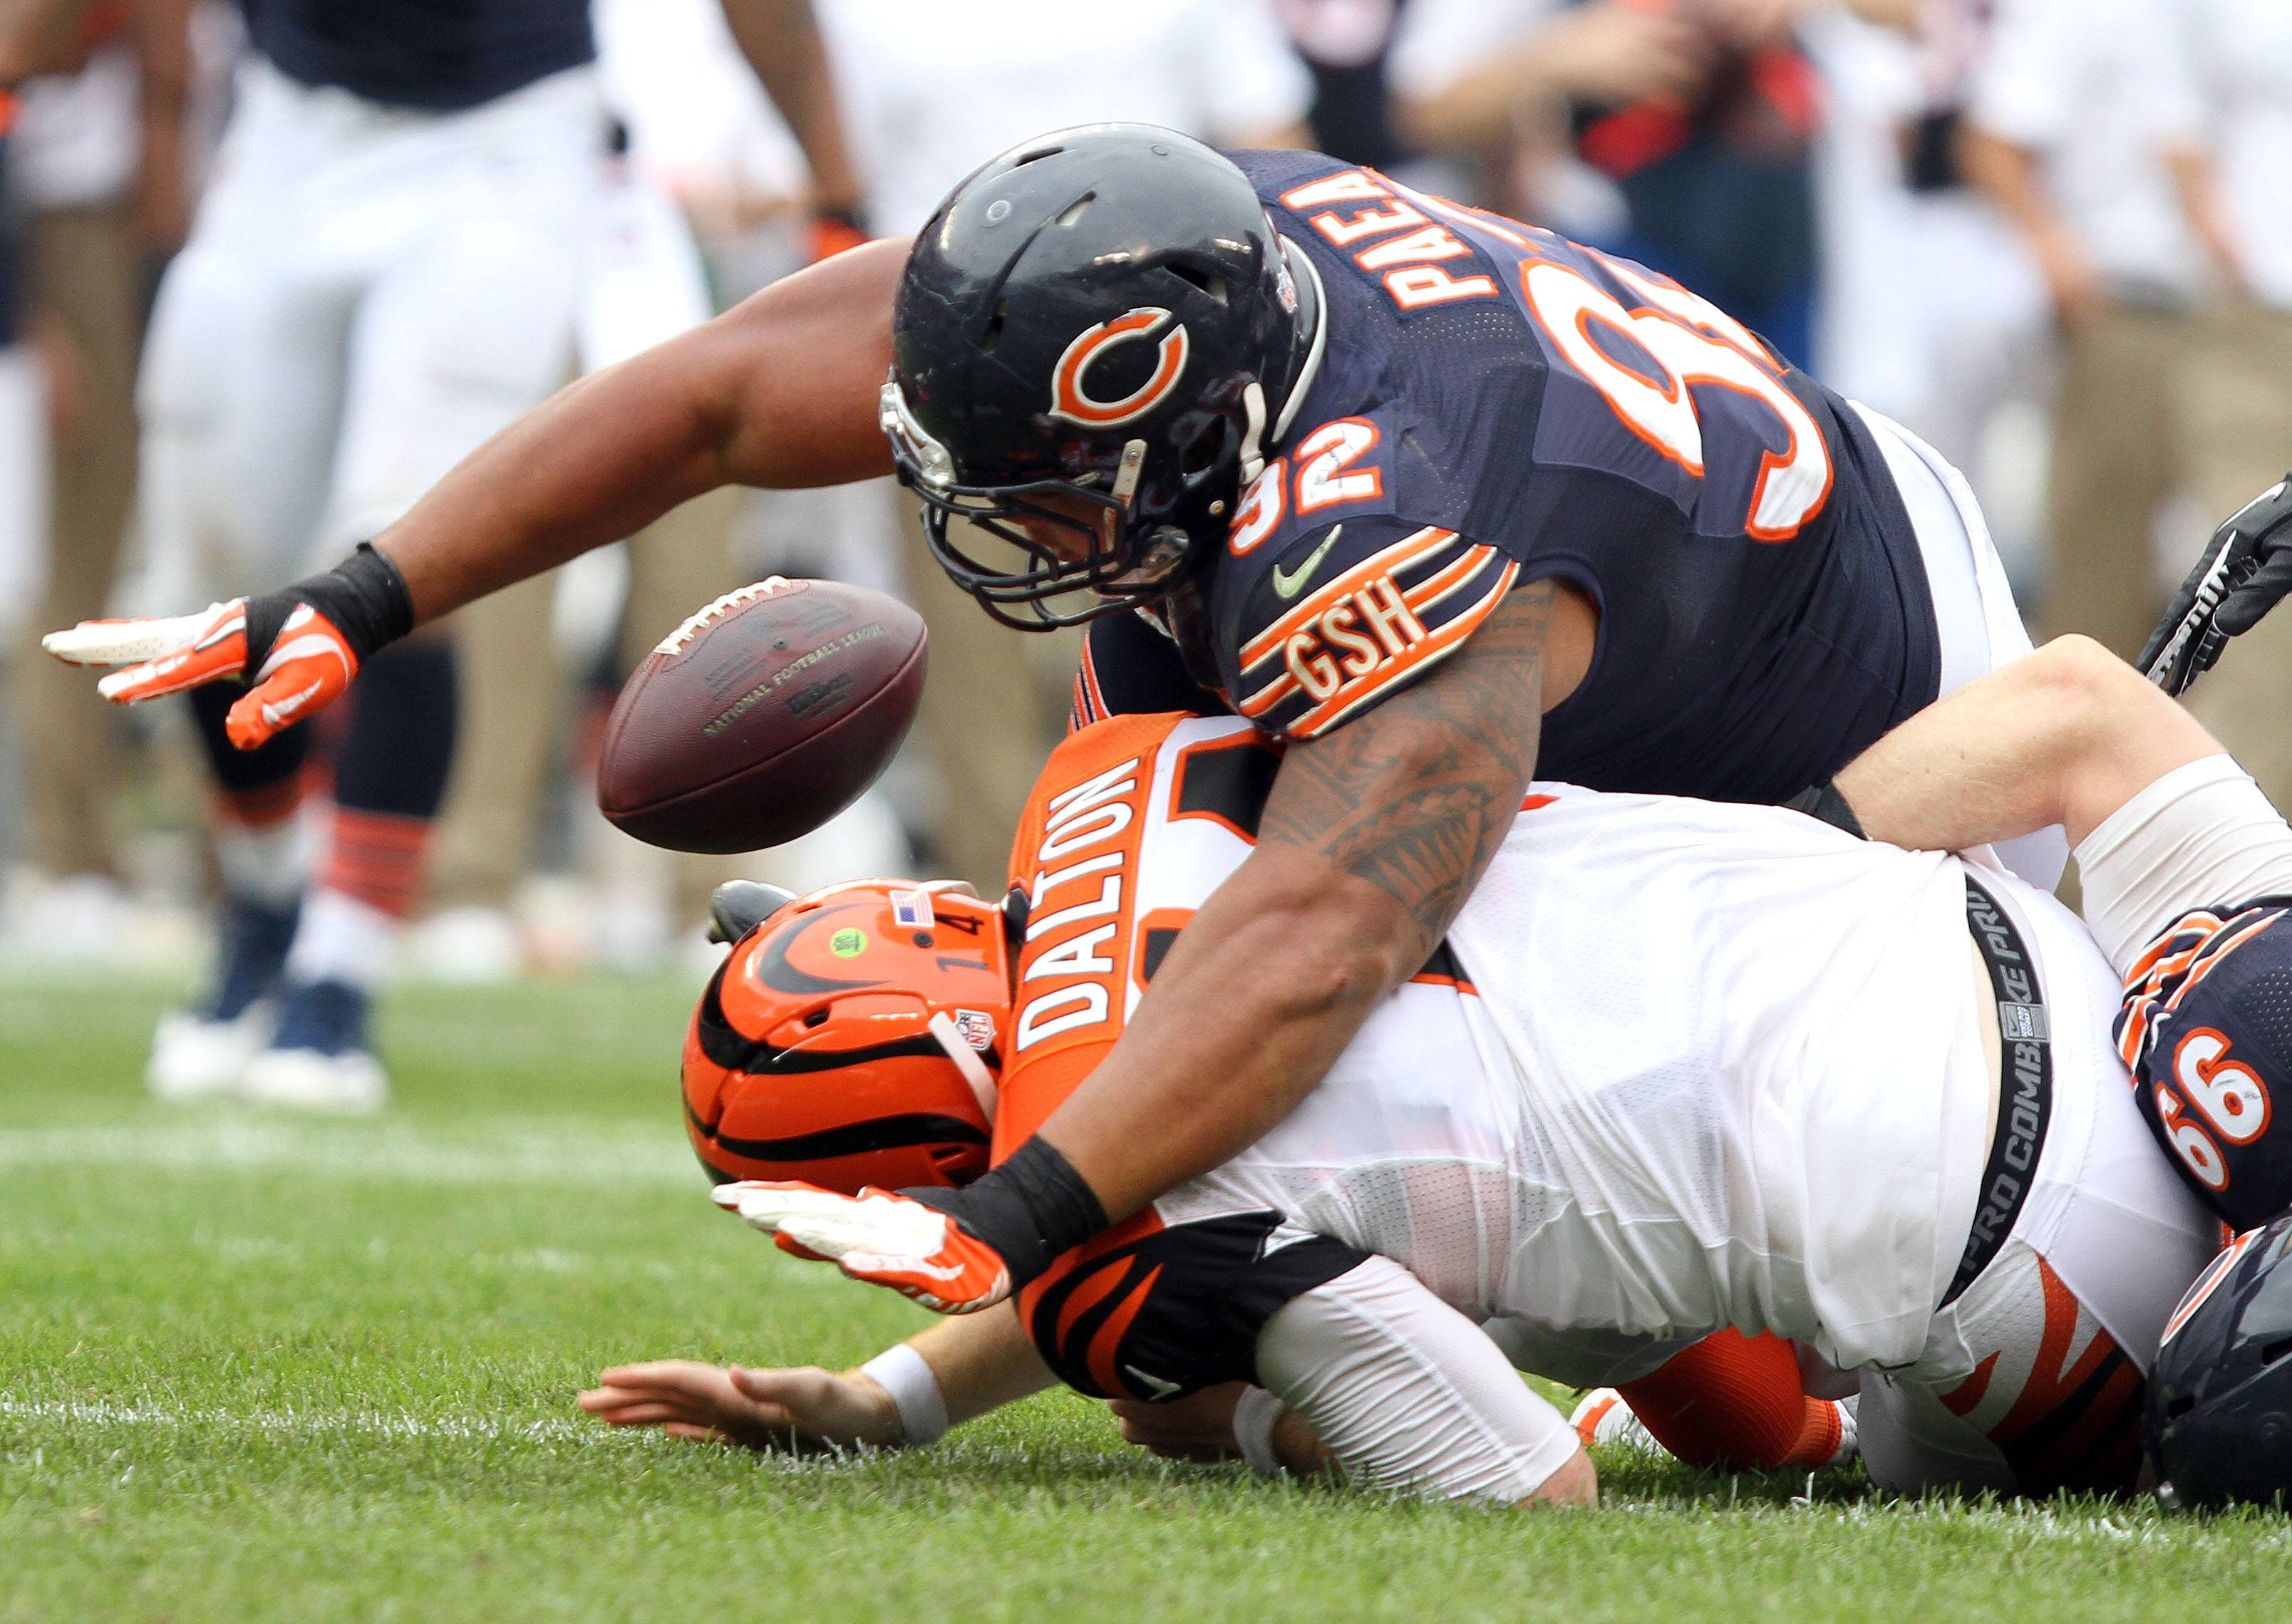 Nose tackle Stephen Paea, forcing a fumble by Bengals quarterback Andy Dalton last season, understands this is an important season for him and his future with the Bears.